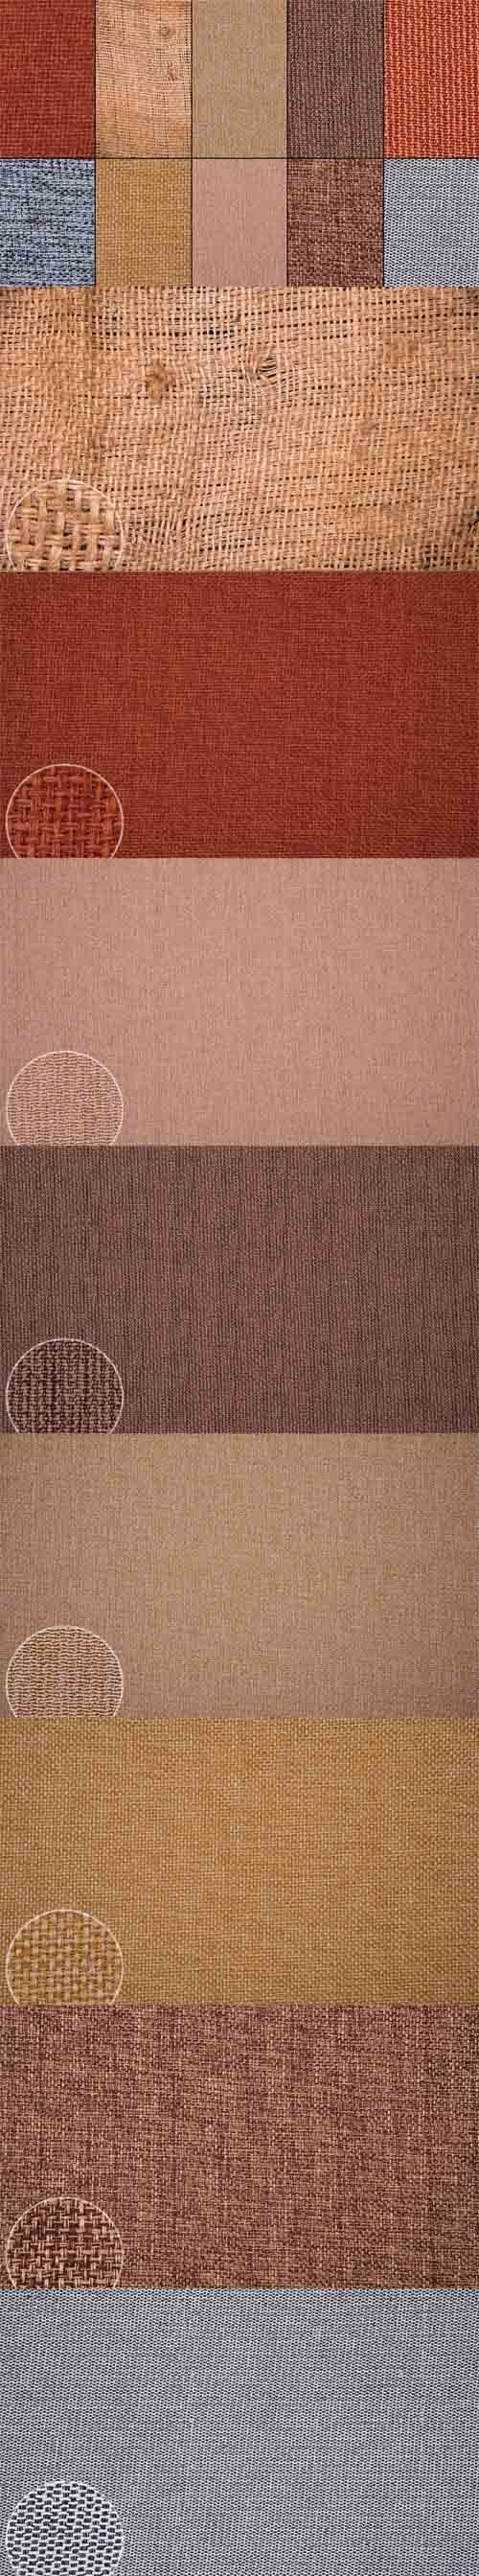 10 Beautiful Jute Fabric Textures